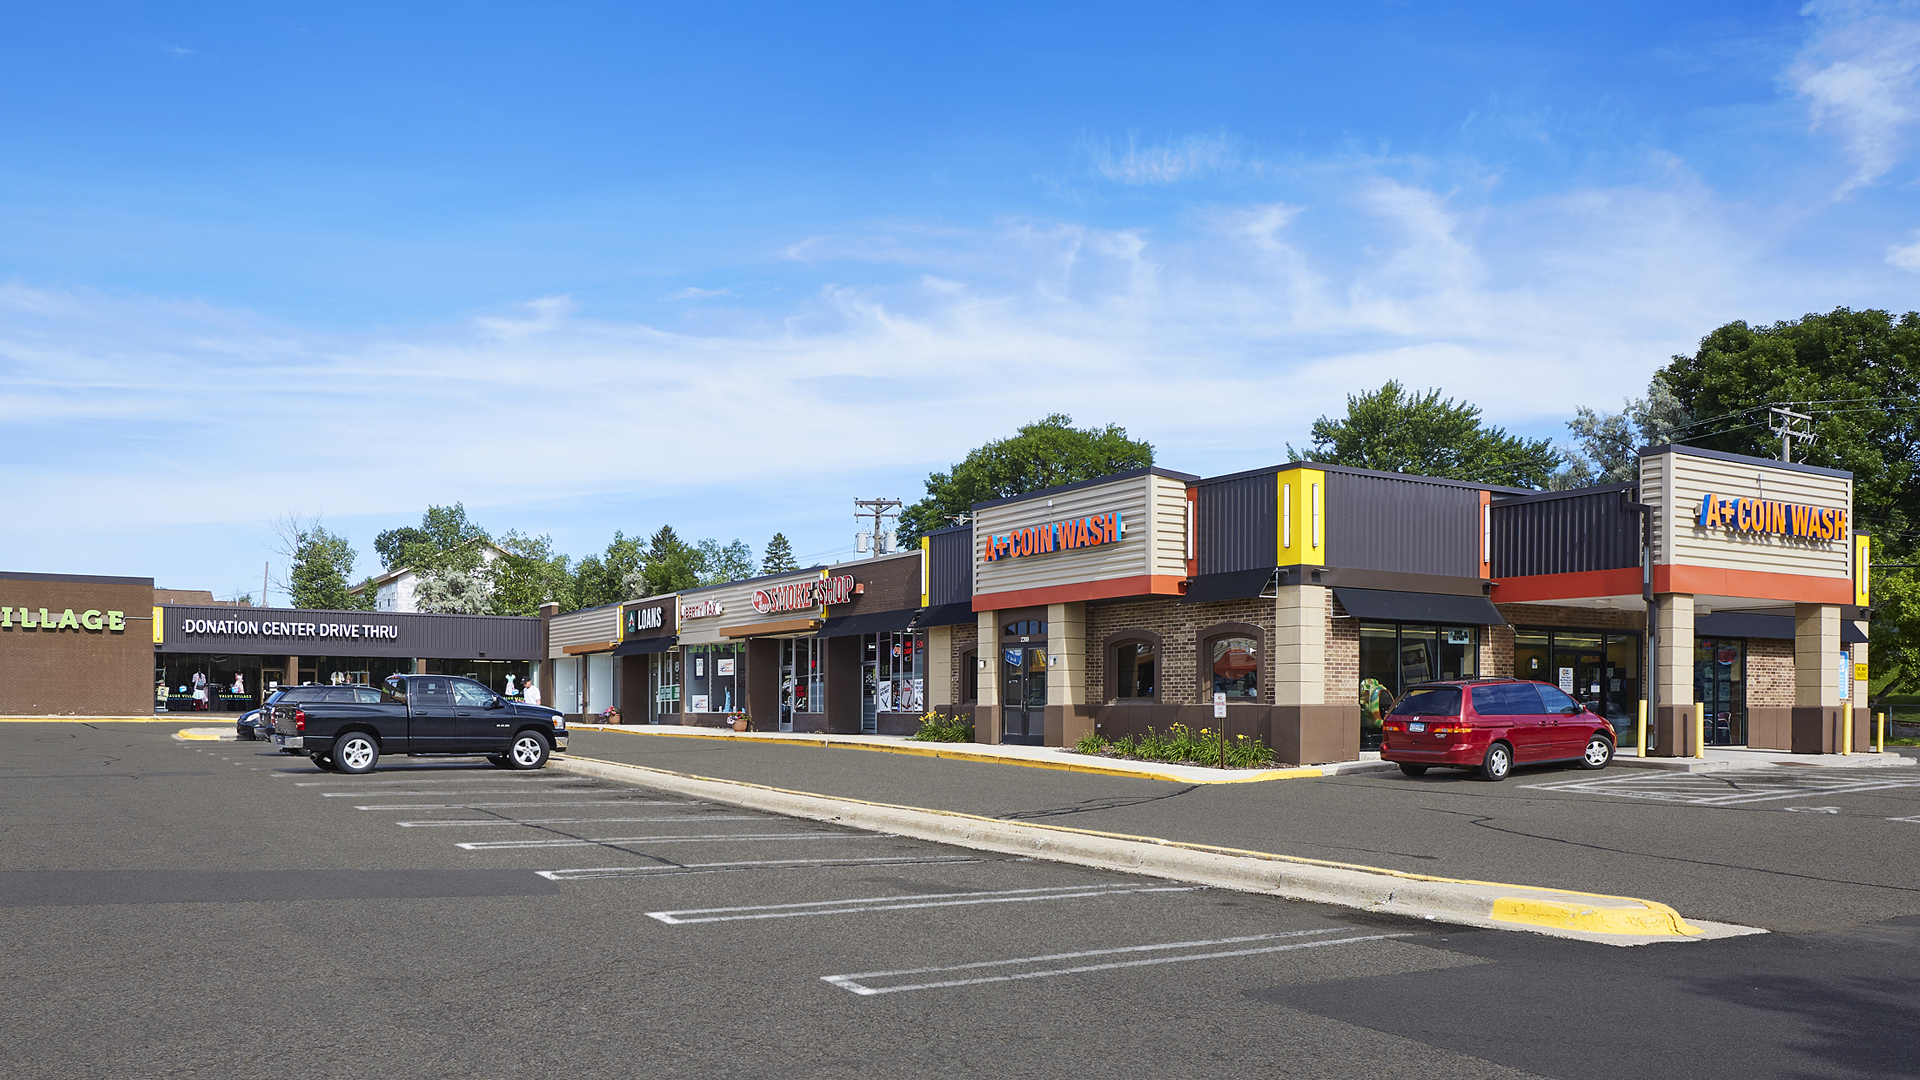 Midland Retail Shopping Center New Hope MN north strip exterior featuring Coin Wash